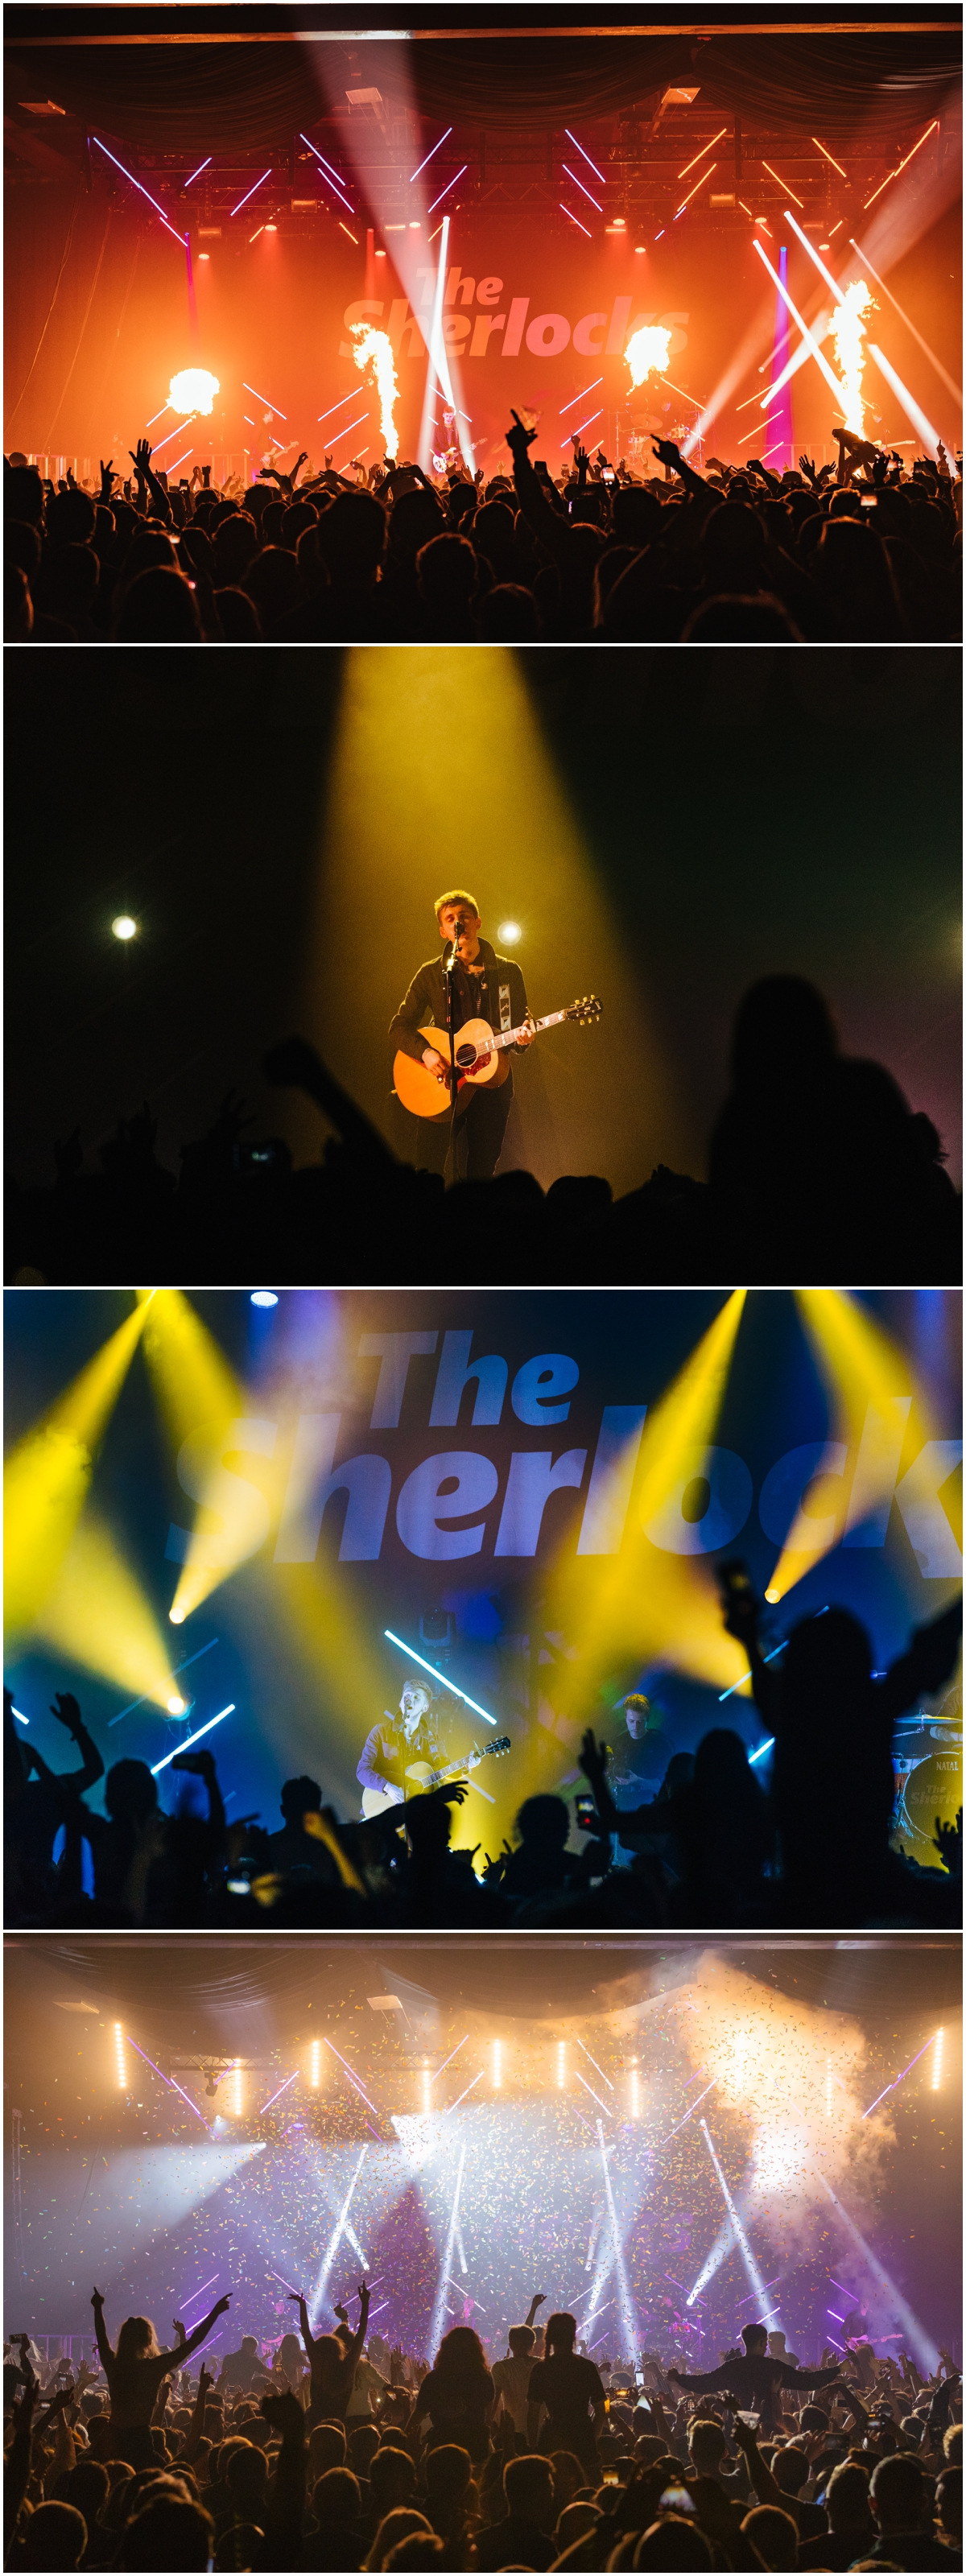 concert event photography the sherlocks manchester